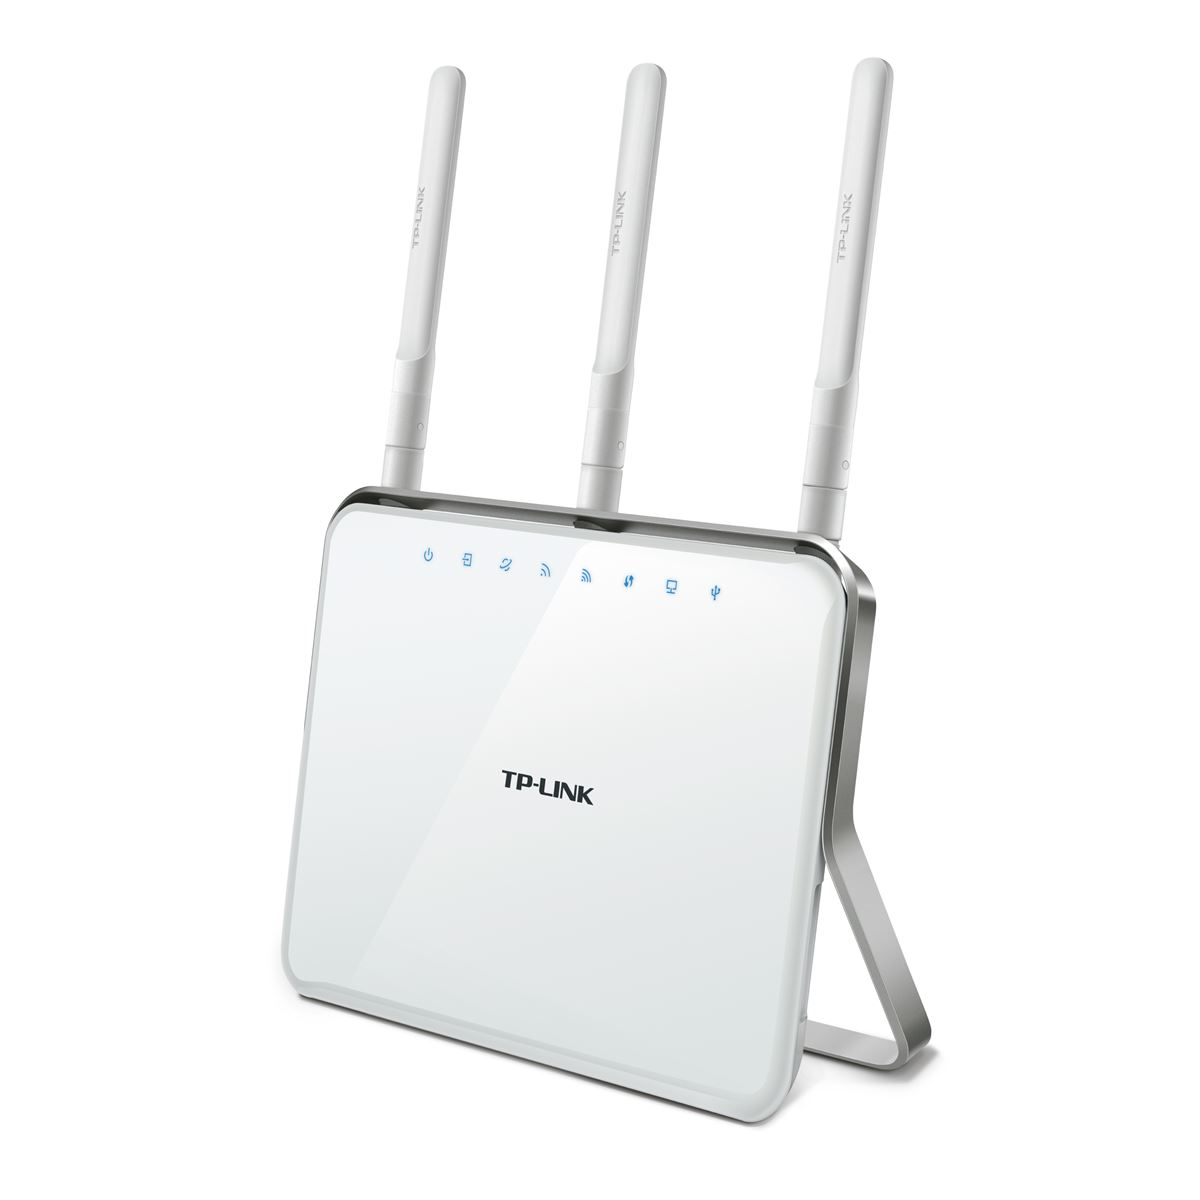 TP-Link Archer D9 AC1900 Dual-Band Wireless Gigabit Modem/Router ADSL2+